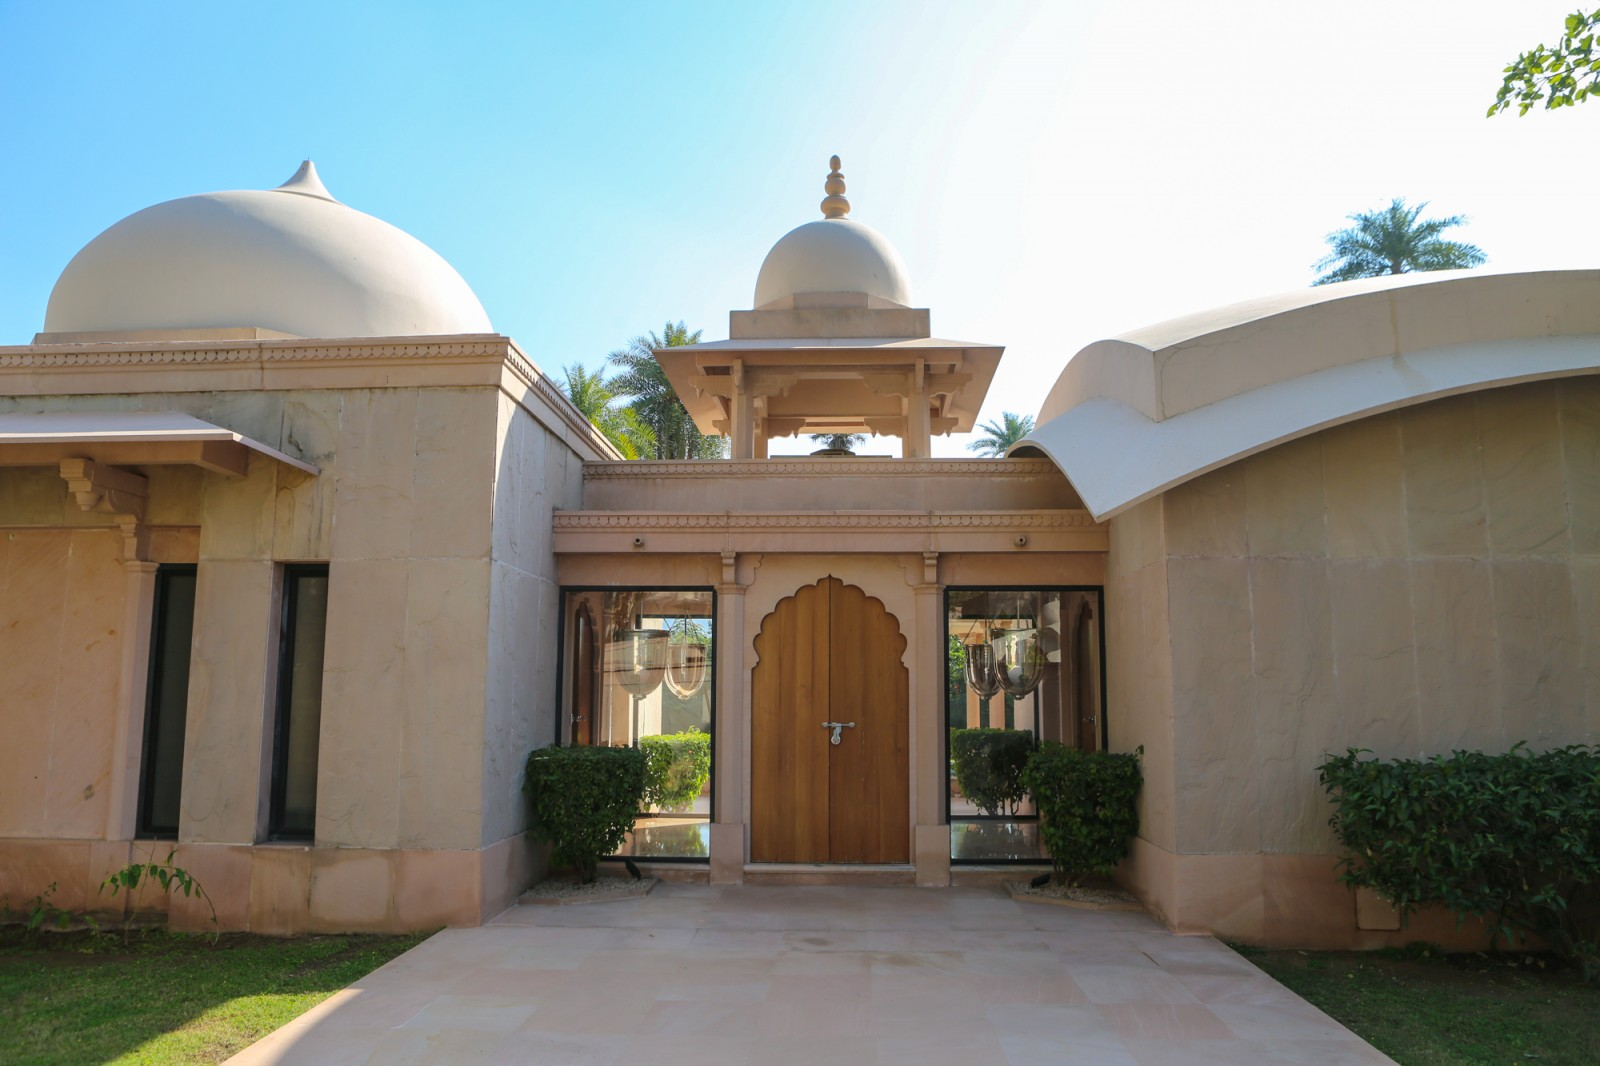 Hotel Review A Stay At The Amanbagh Rajasthan India My Life S